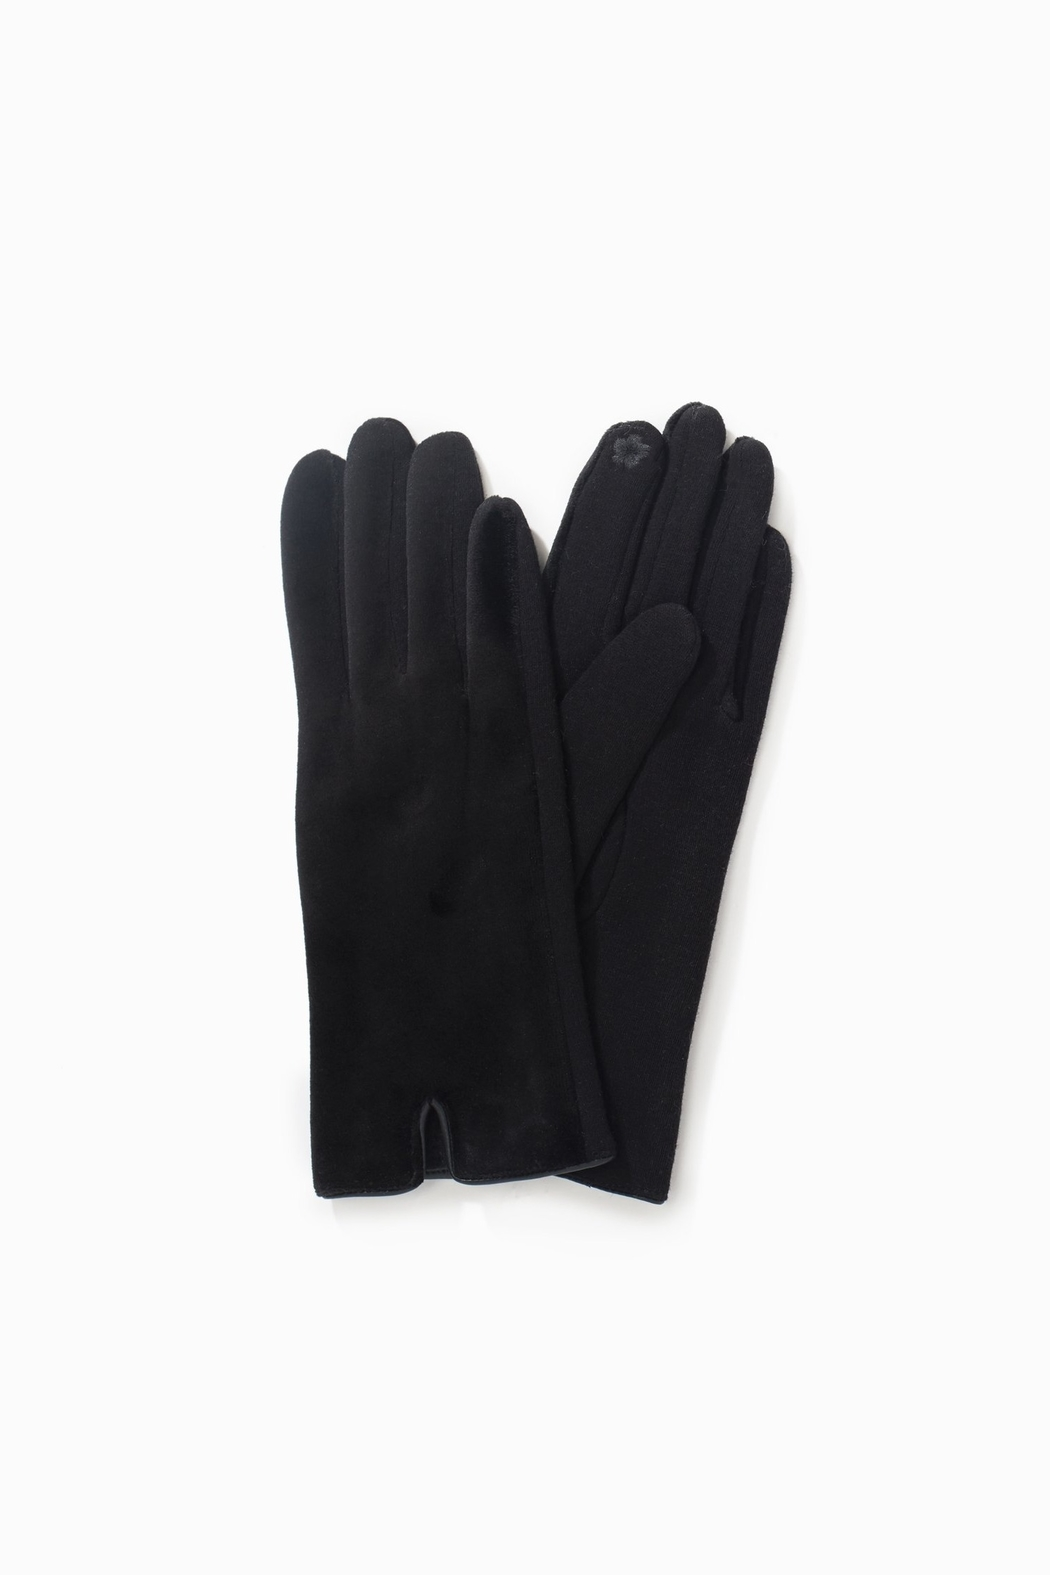 Look by M Brushed Fur Trim Glove - Main Image